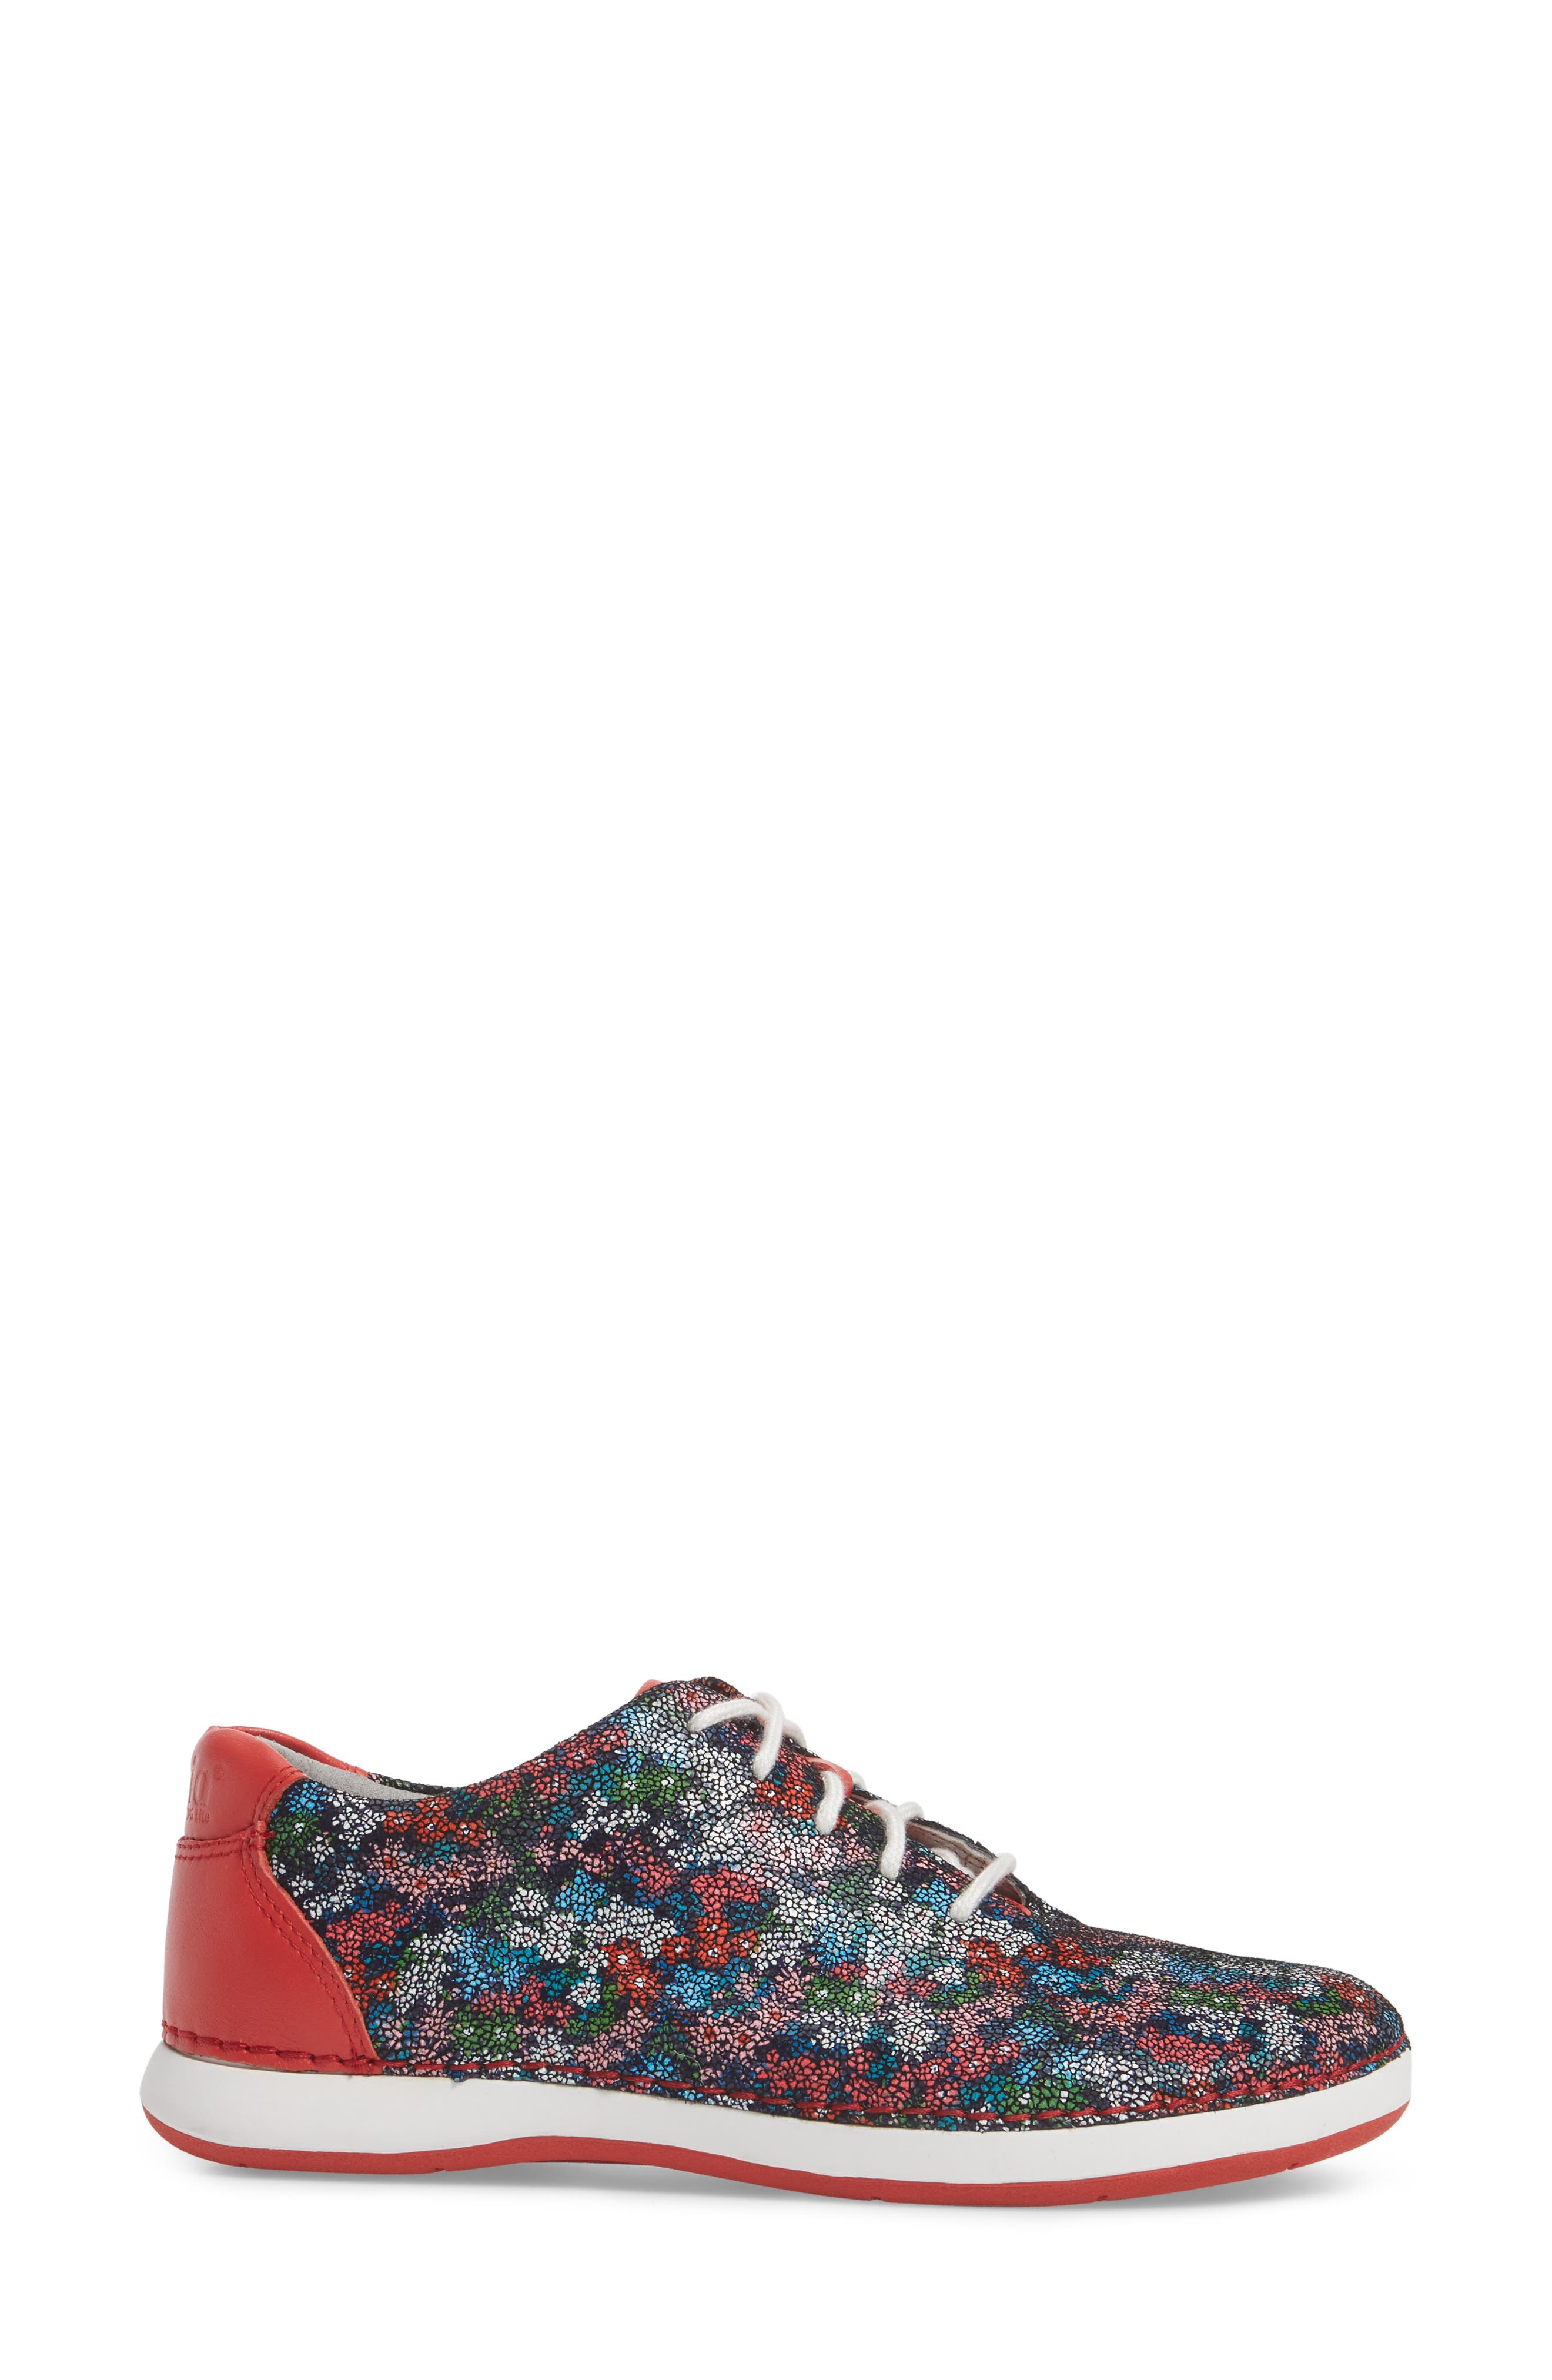 Essence Lace-Up Leather Oxford,                             Alternate thumbnail 3, color,                             Botanncool Leather